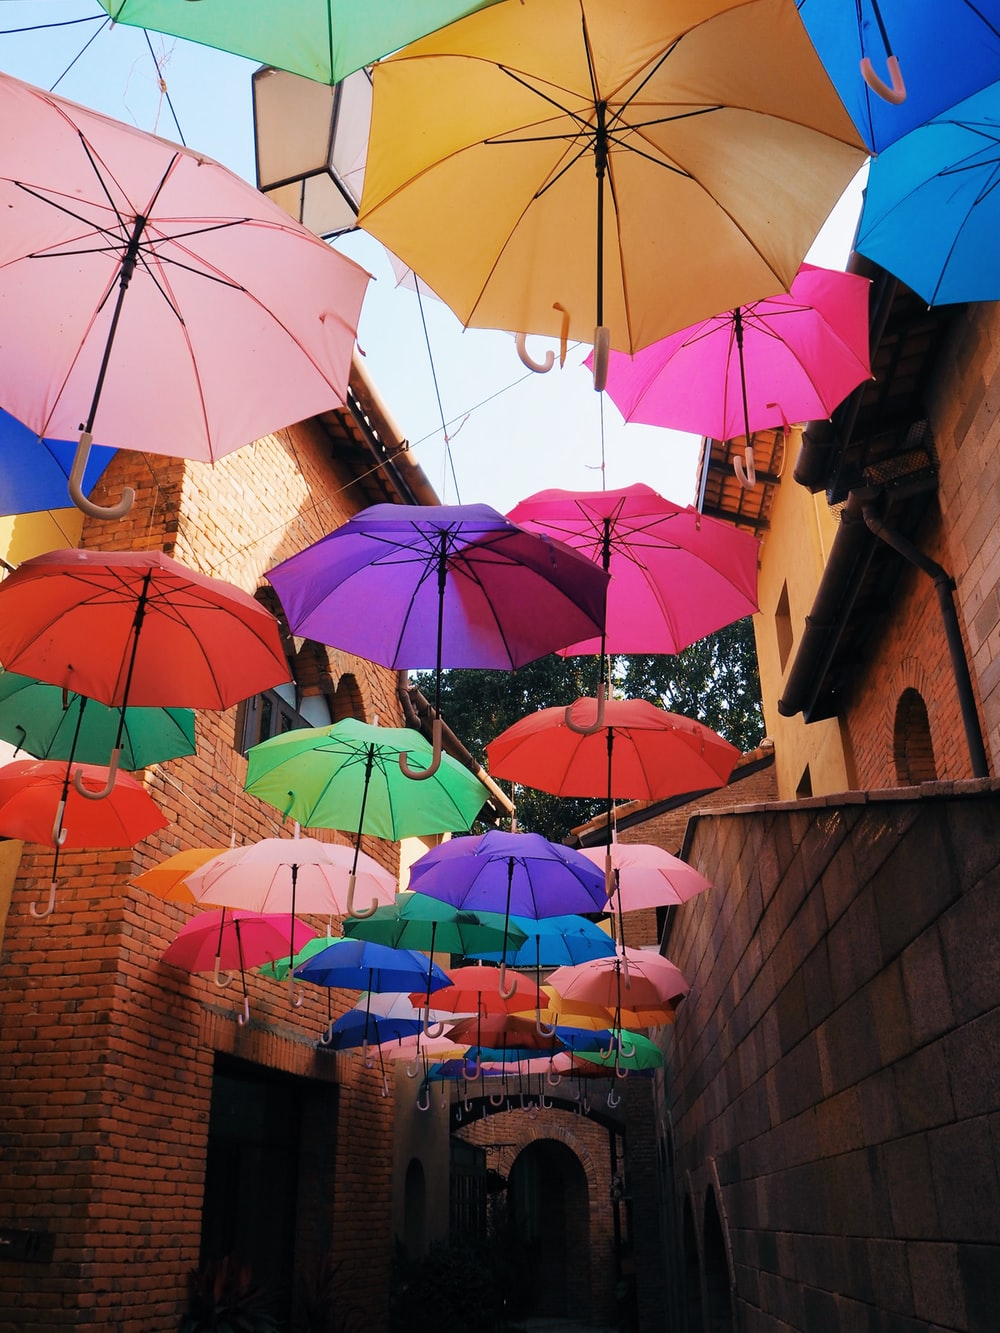 assorted-color umbrella hanging beside building